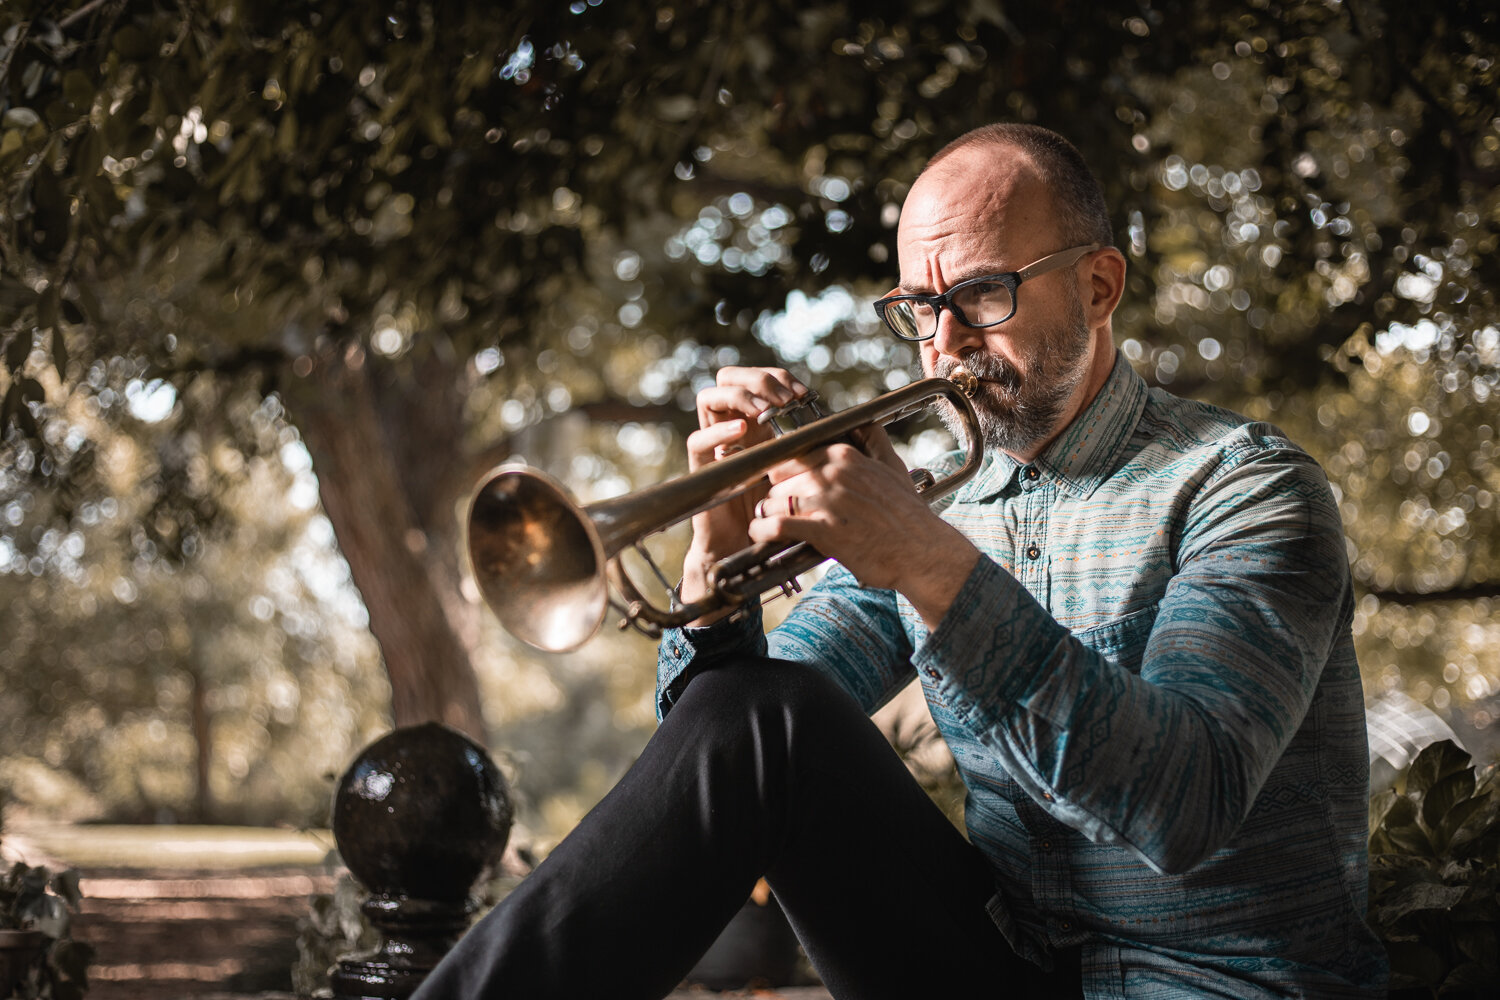 outdoor portrait of well dressed musician playing trumpet in a garden under the shade of a large tree